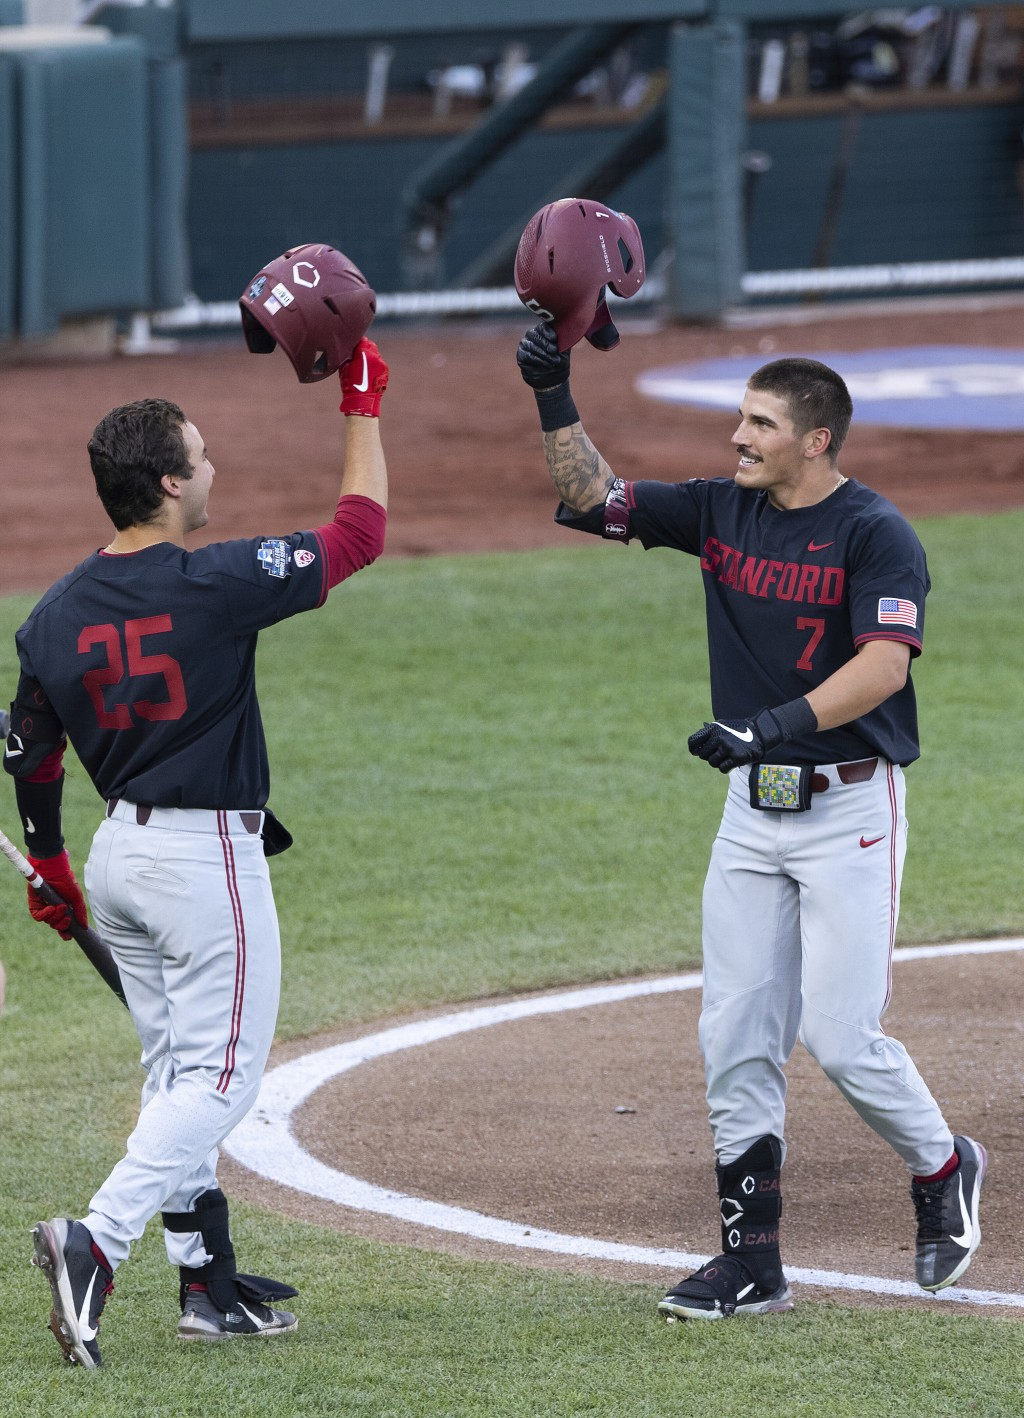 Stanford's Brock Jones (7), right, celebrates with Kody Huff (25) after hitting a home run in the third inning during a baseball game in the College W...